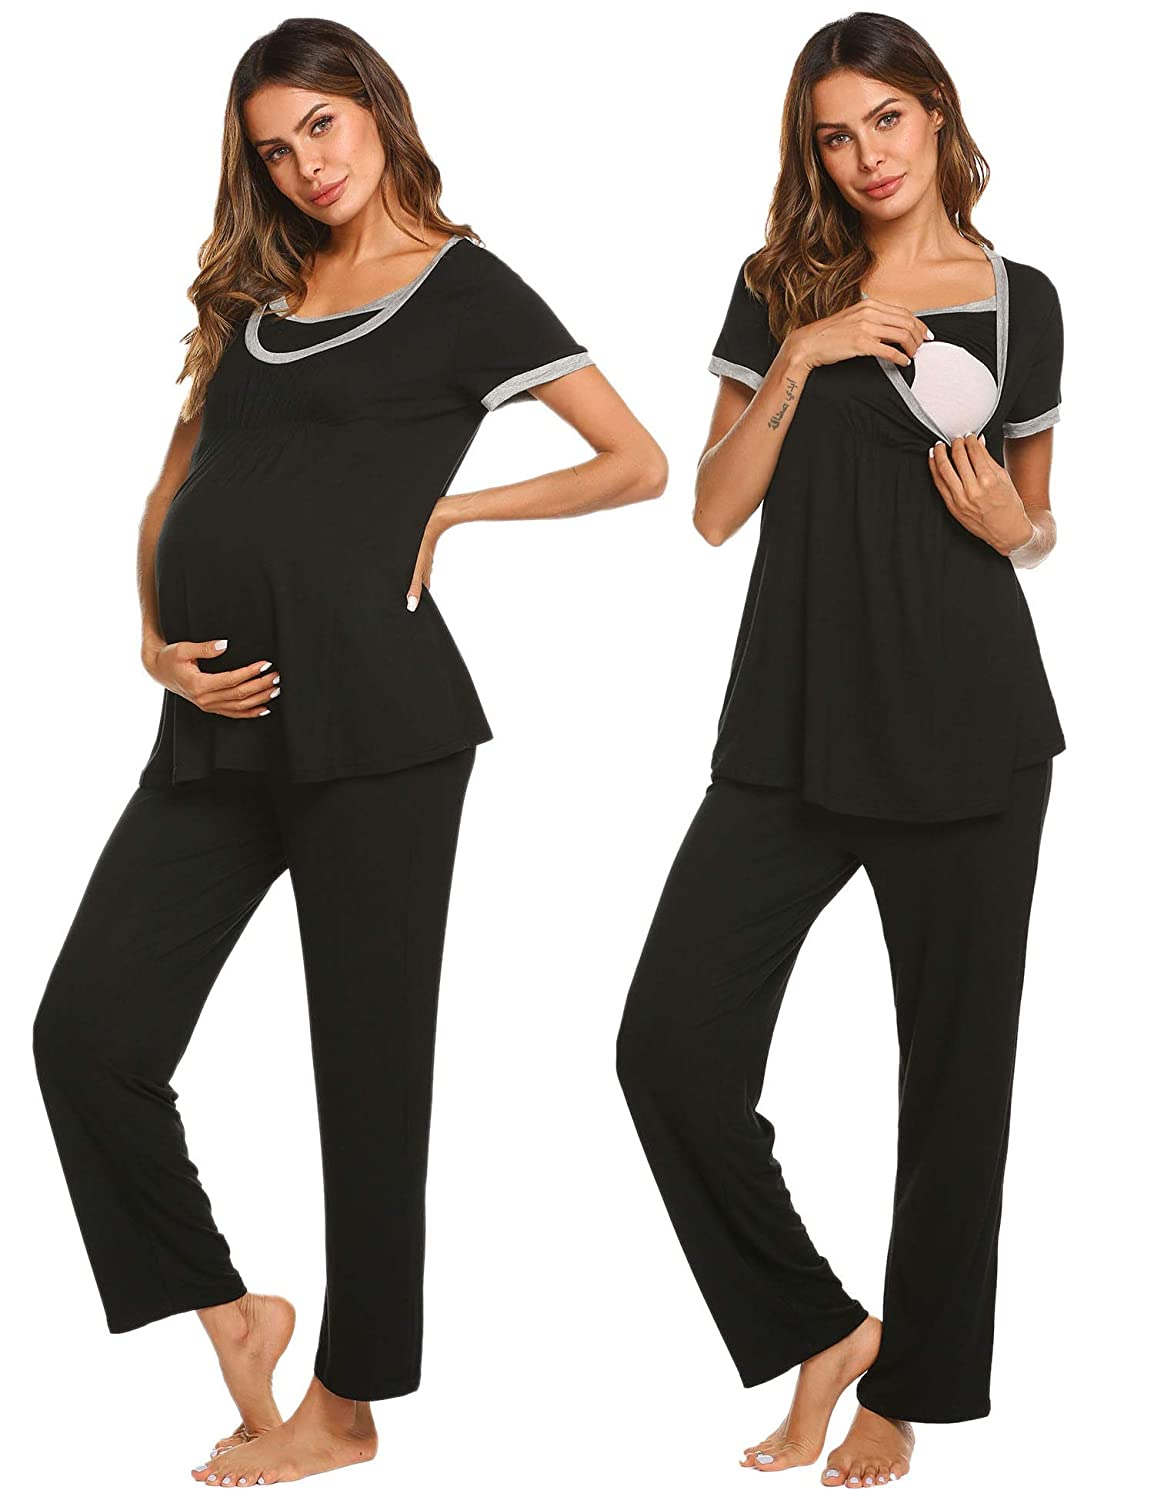 9bc1f153181c5 Ekouaer Maternity Nursing Pajama Sets Soft Short Sleeves Breastfeeding  Sleepwear EKK009787